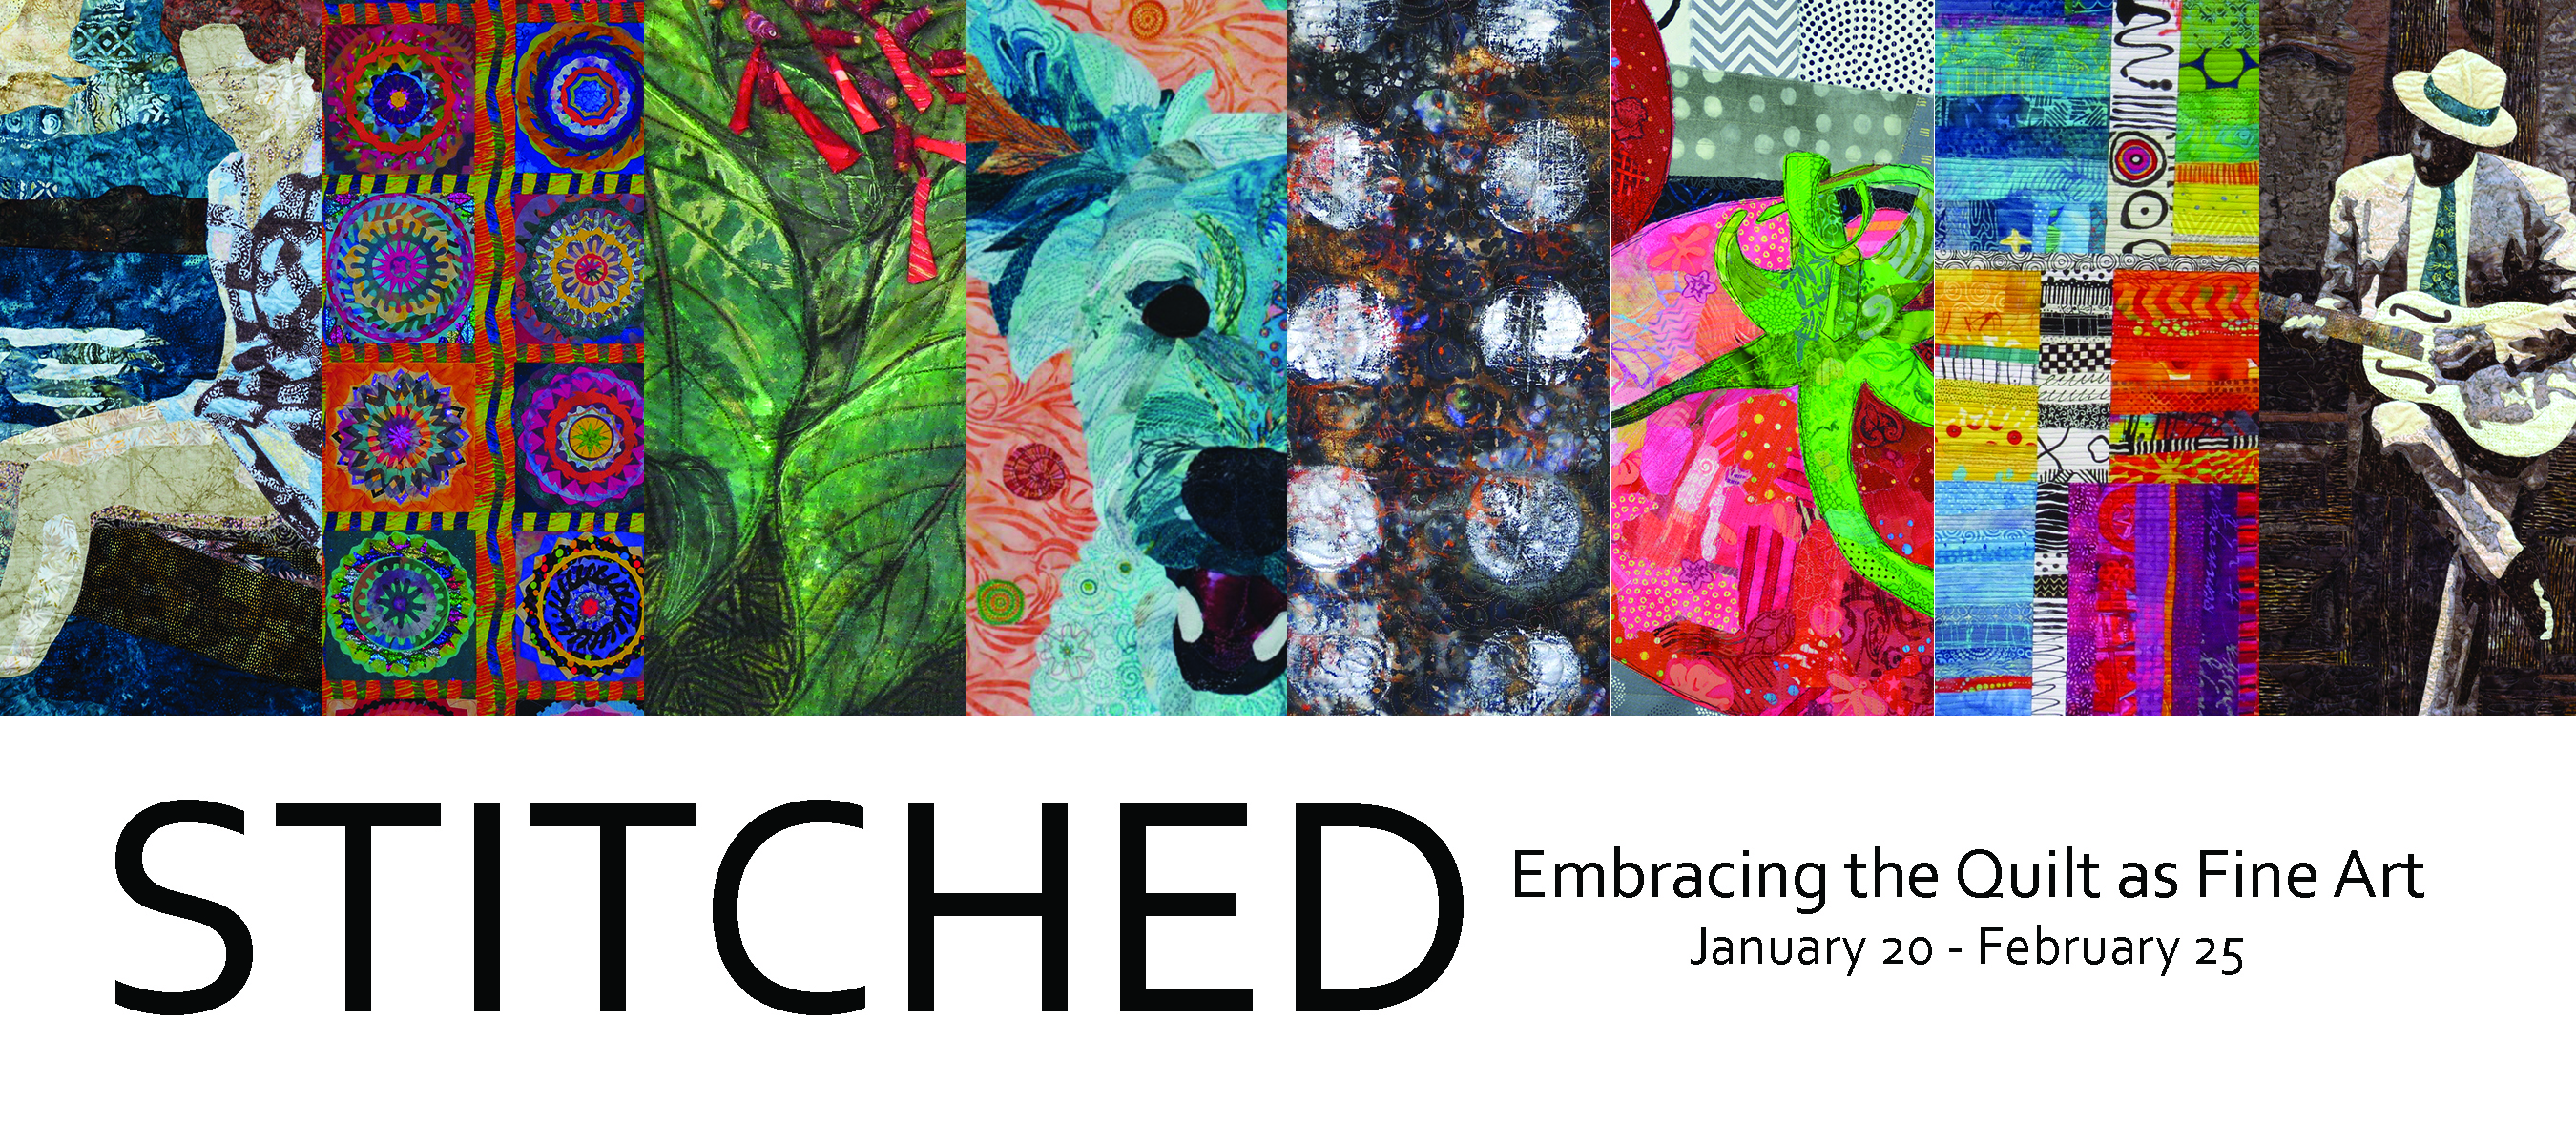 STITCHED: Embracing the Quilt as Fine Art